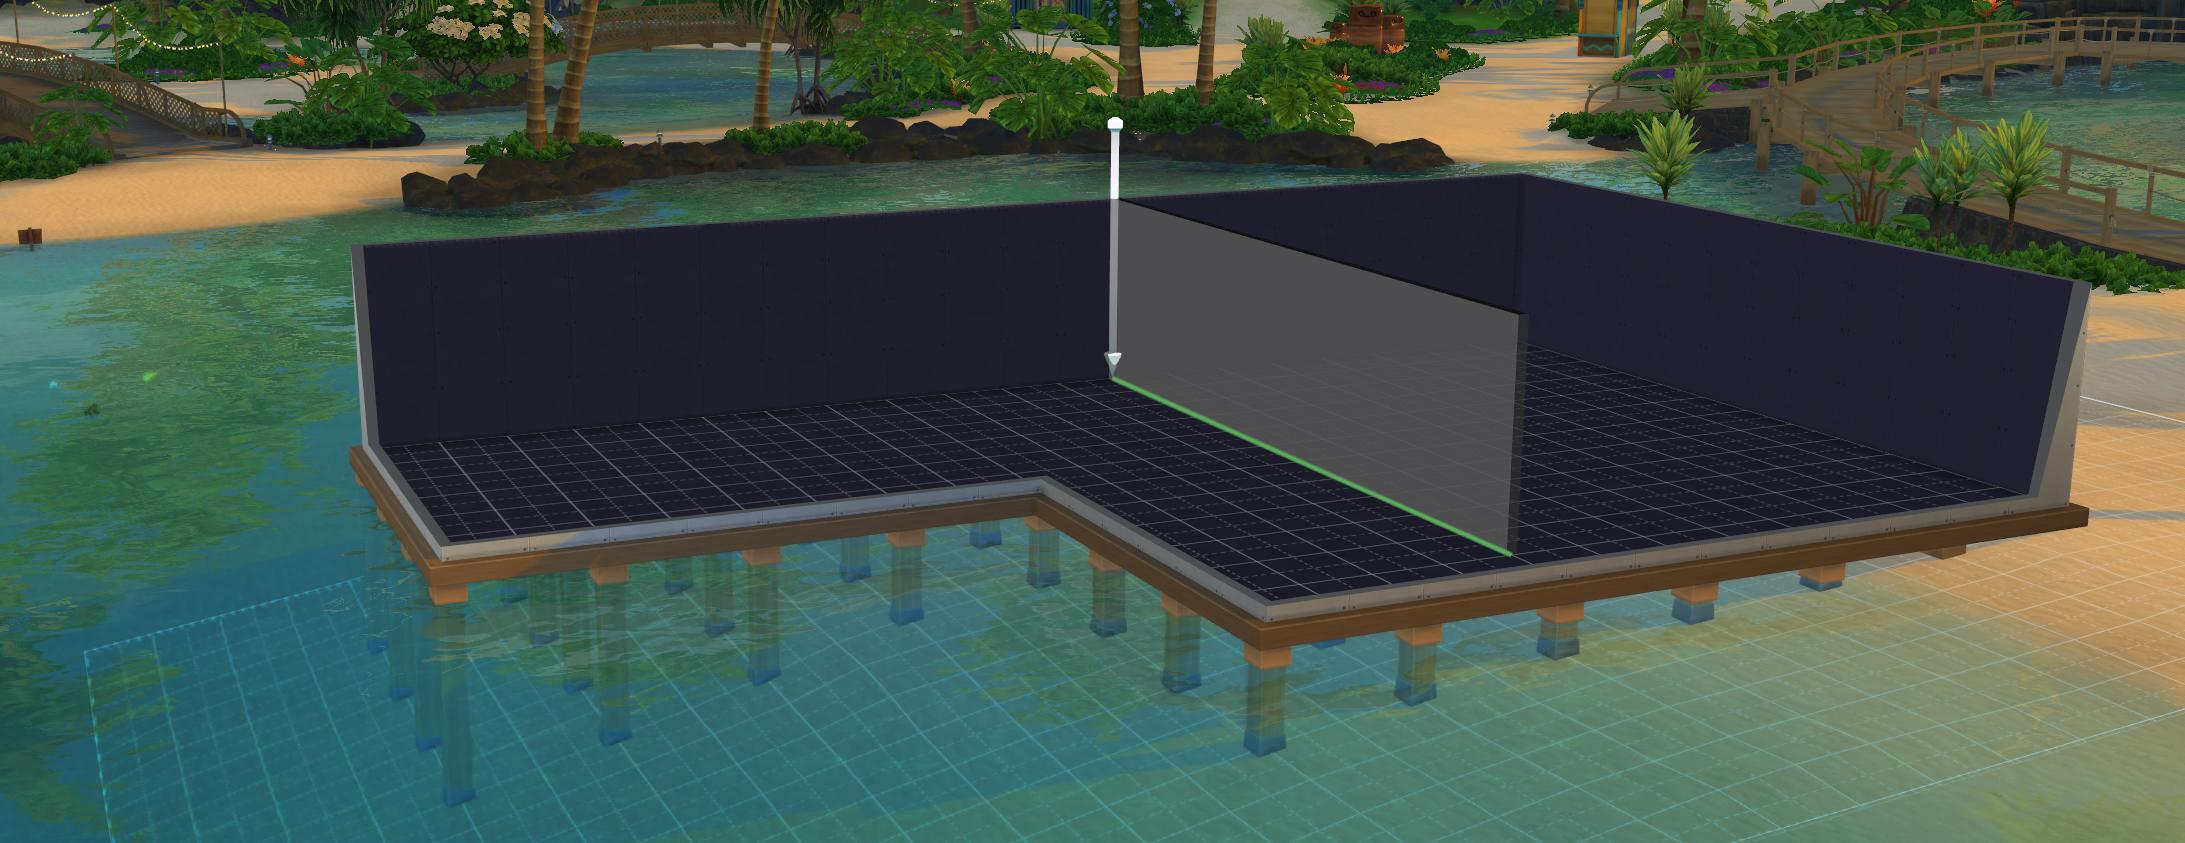 The Sims 4 Island Living: Separate rooms are required for separate foundations on your home build